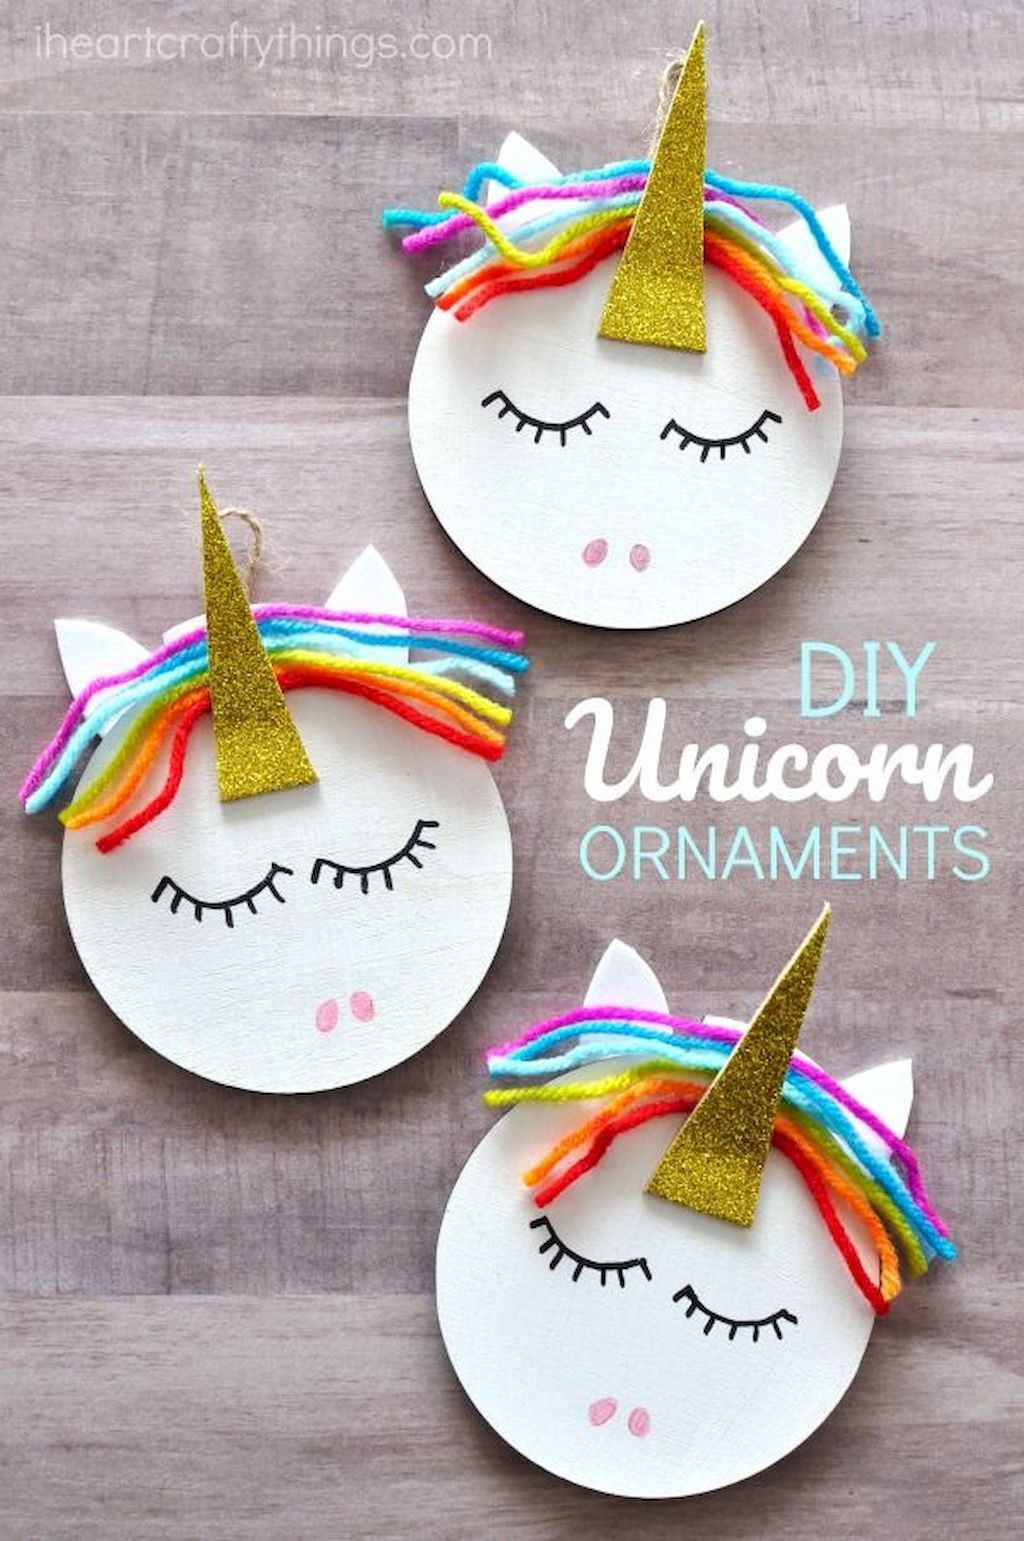 DIY Crafts For Kids  20 Cheap and Easy DIY Crafts Ideas For Kids